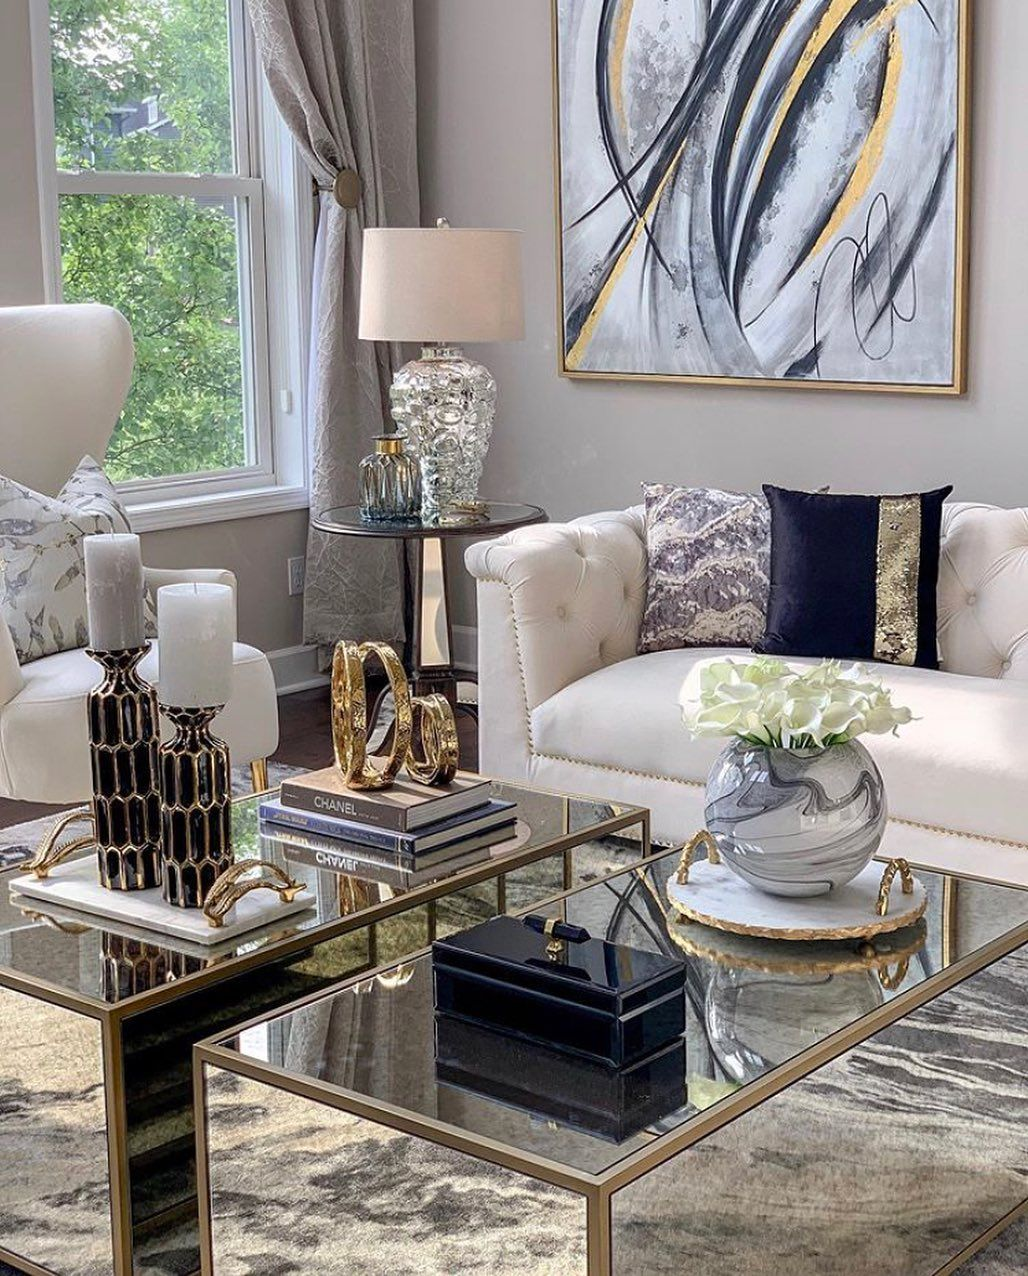 Home Decor Interior Design On Instagram A Beautifully Decorated House By A Beautifu Living Room Decor Gray Living Room Decor Apartment Living Room Decor Cozy